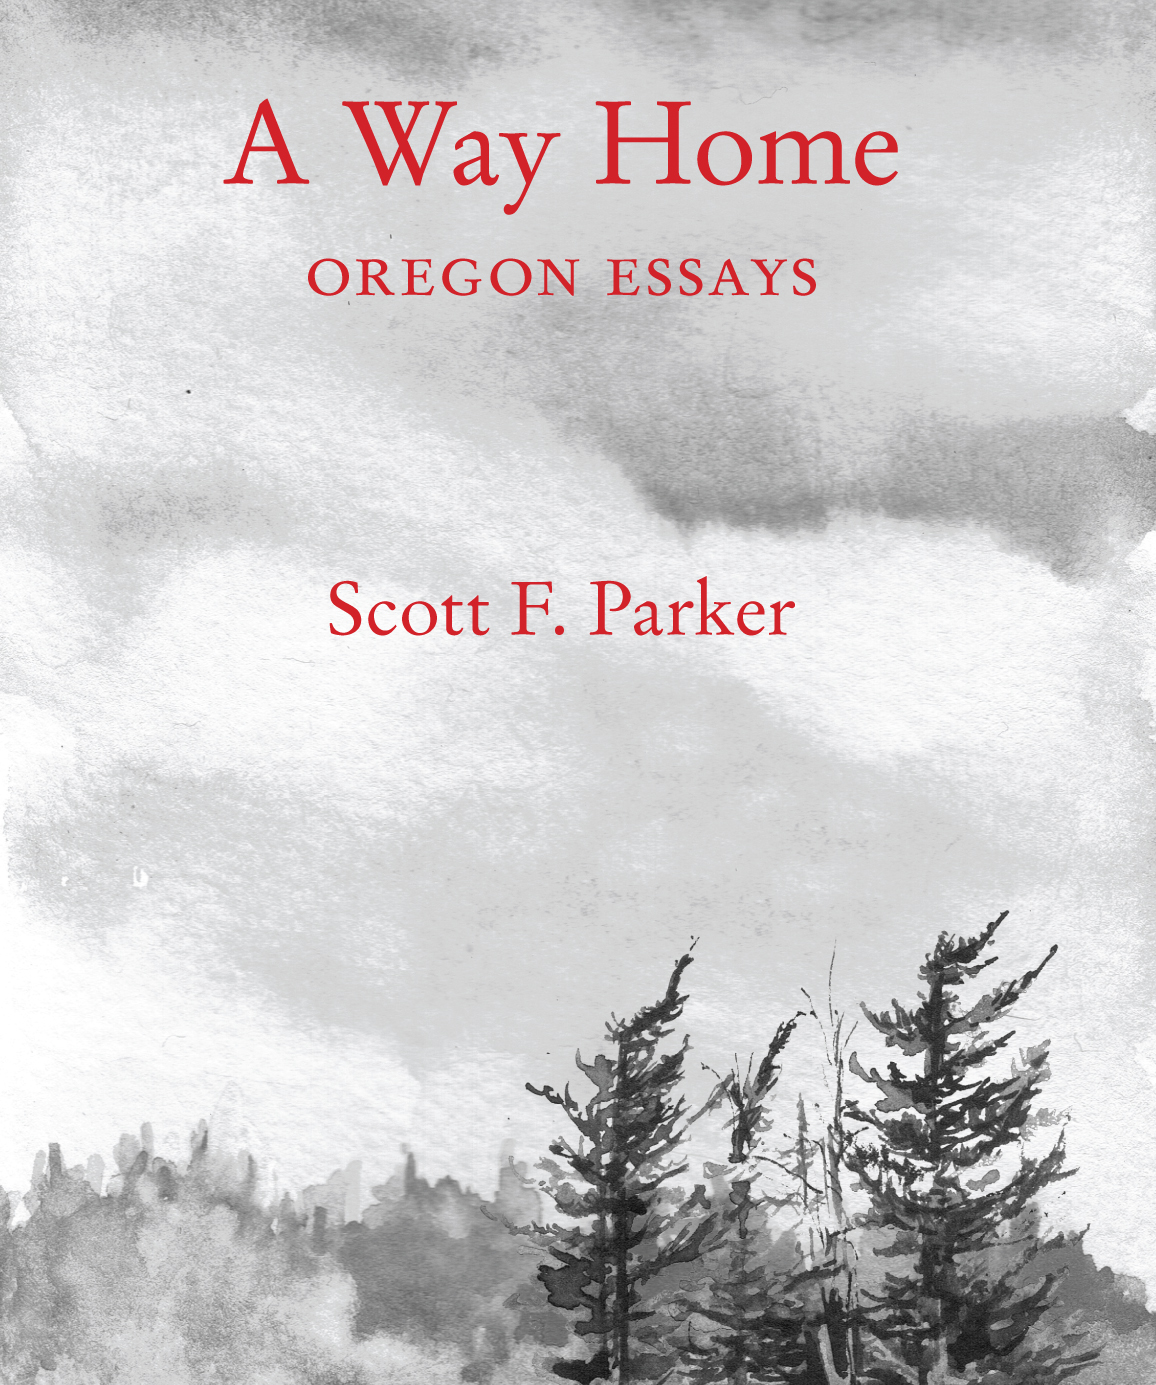 A Way Home Sold by Kelson Books